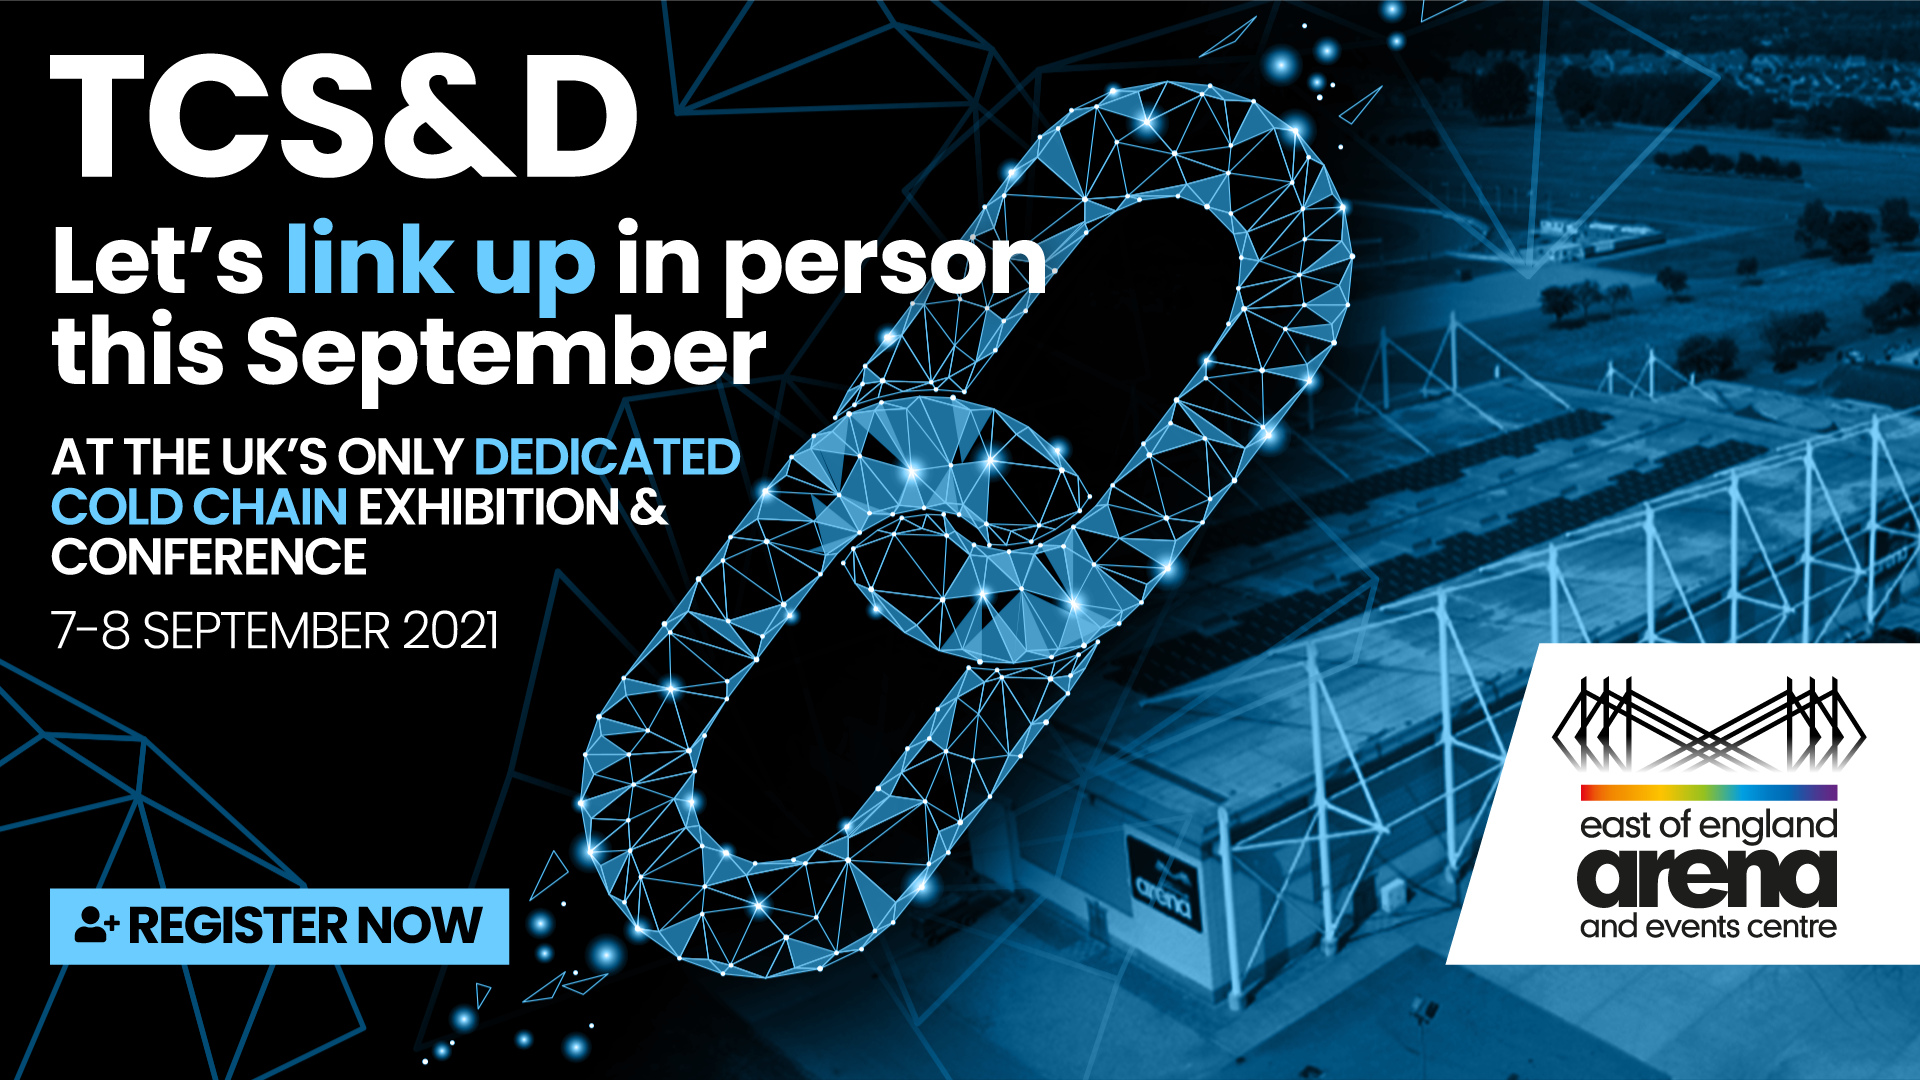 The UK's Only Cold Chain Exhibition